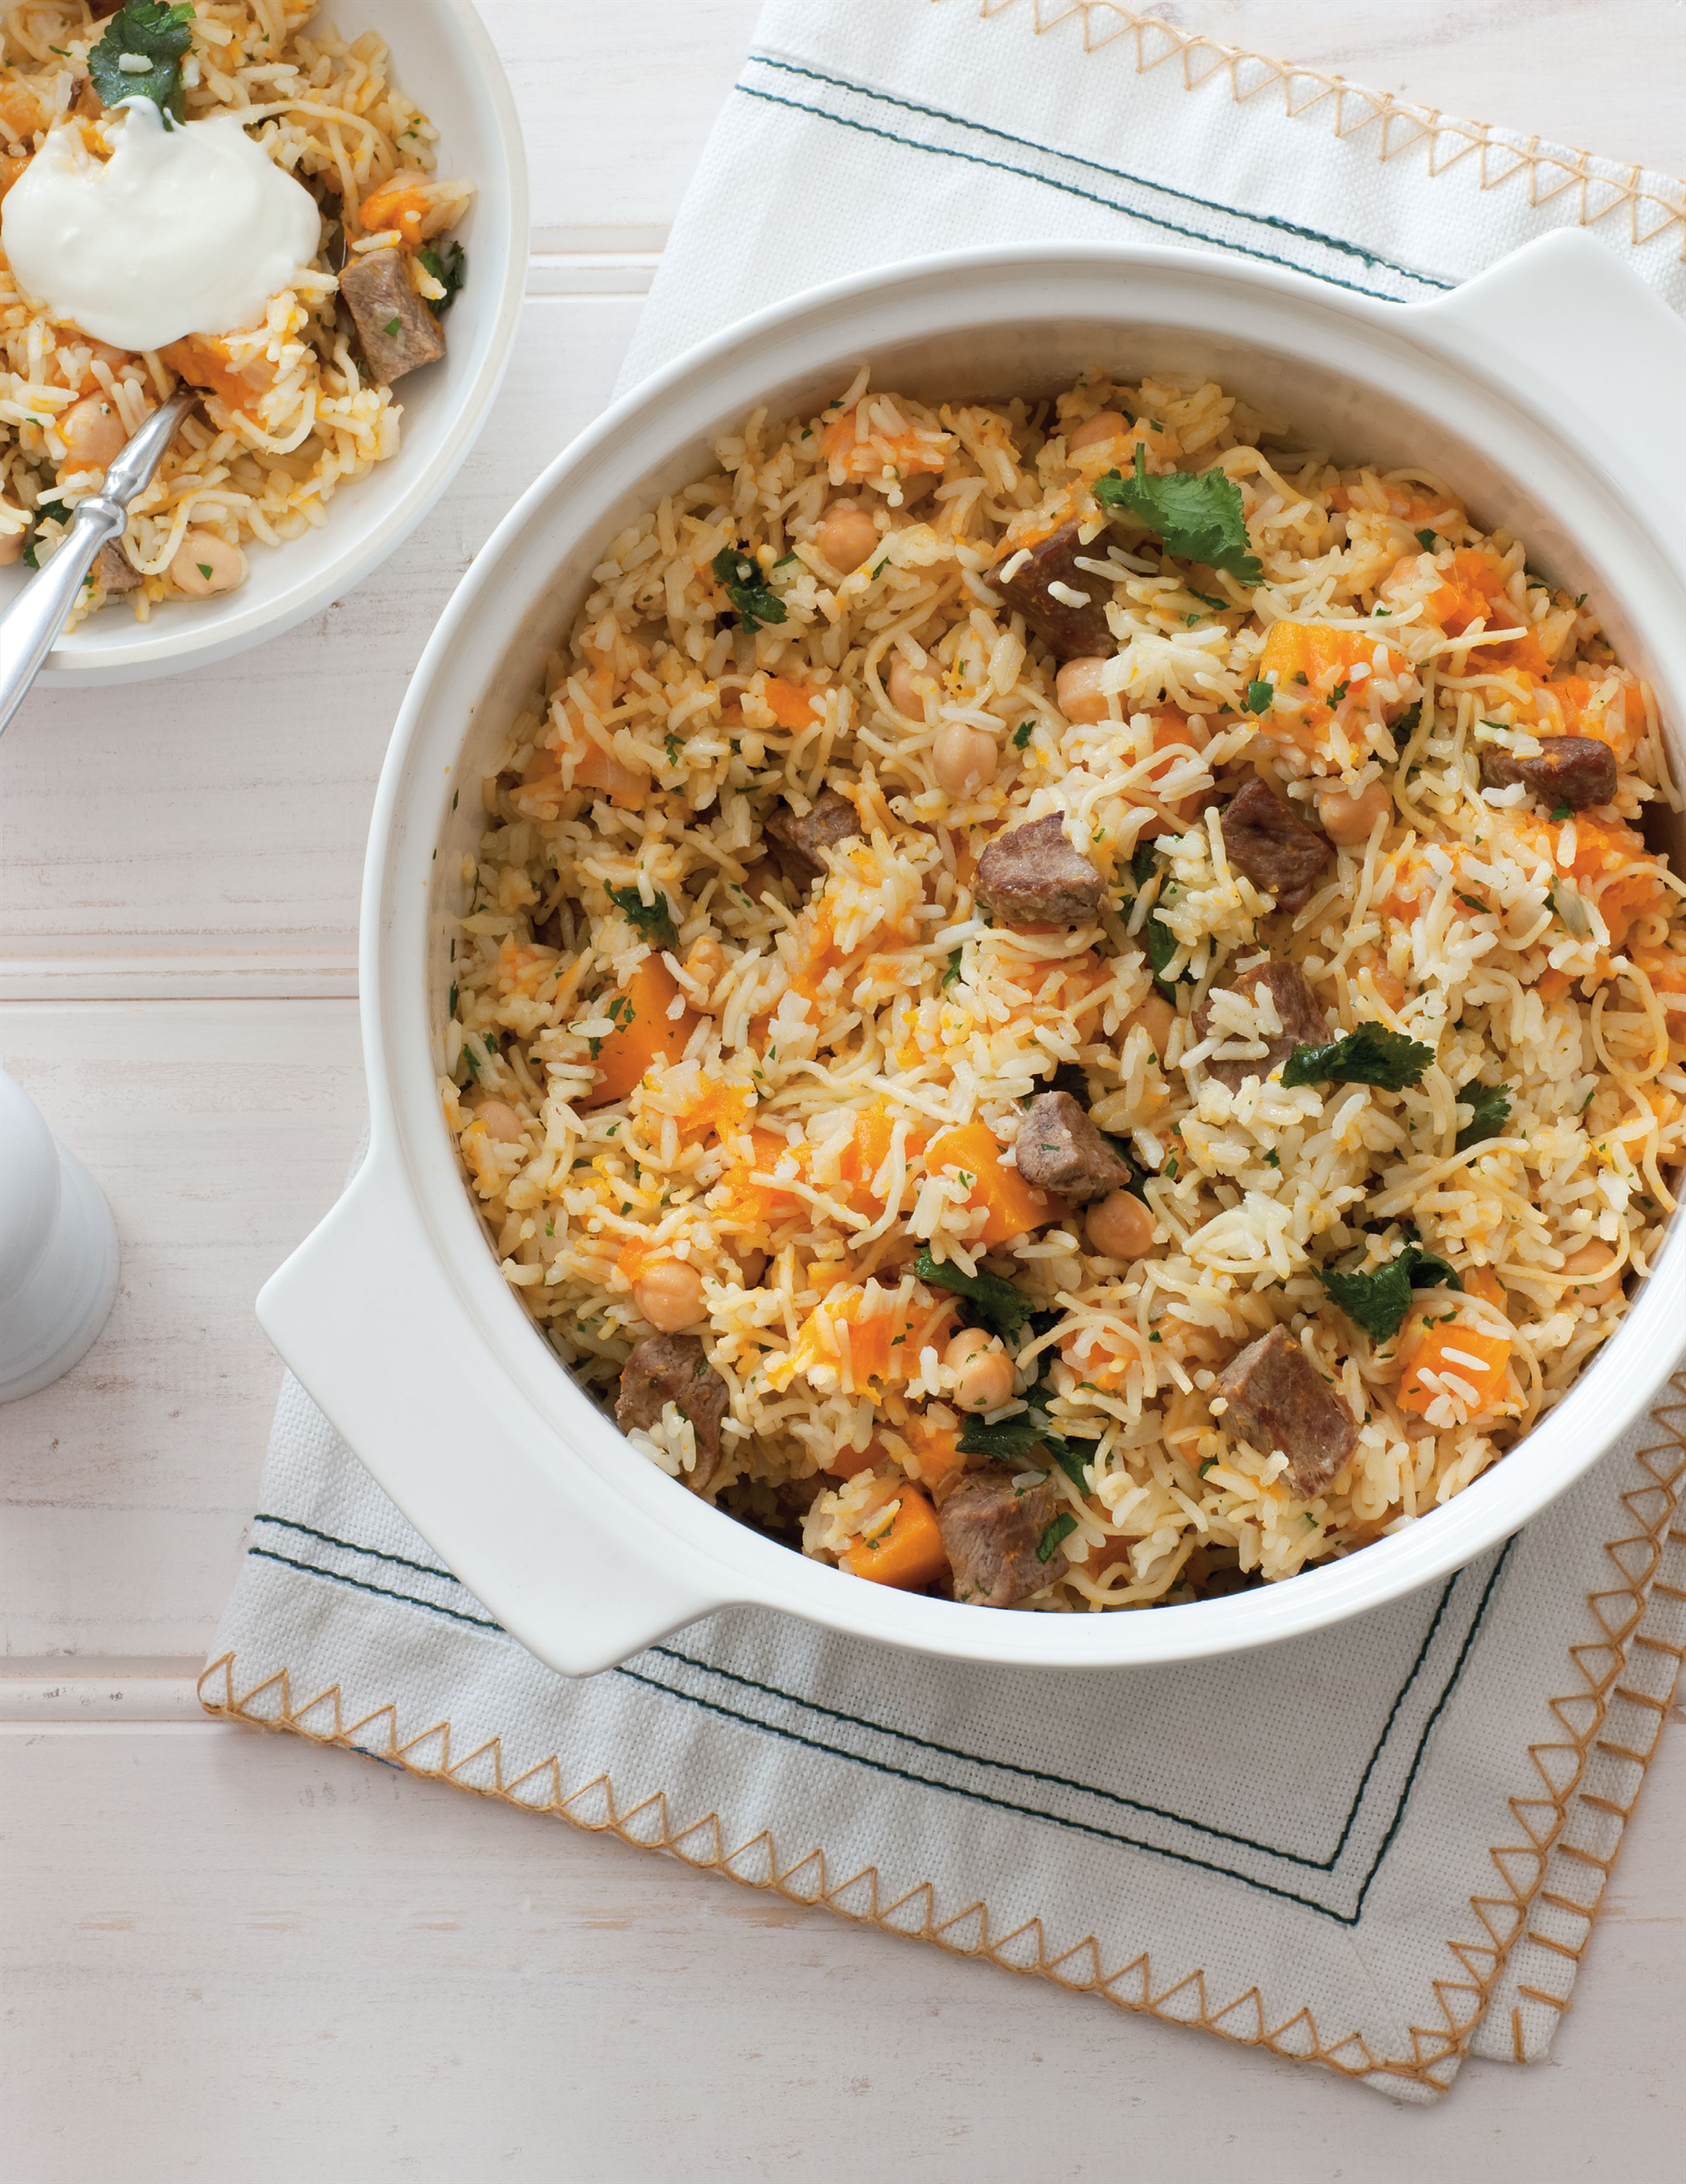 Lamb and pumpkin pilaf